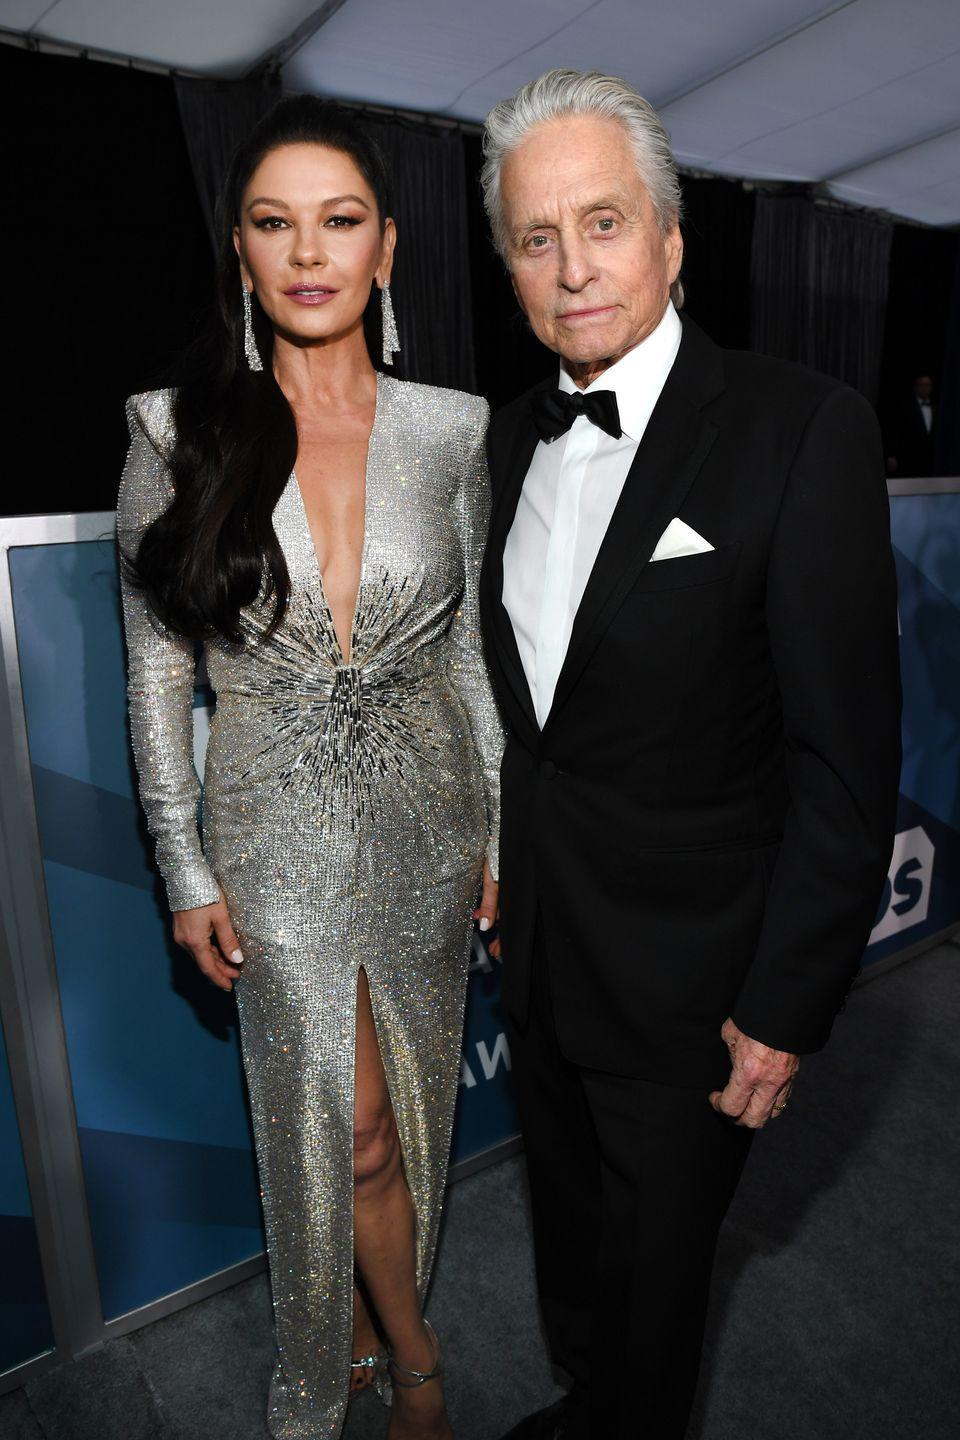 "<p>Over 350 guests attended Michael Douglas and Catherine Zeta-Jones' wedding held at the Plaza Hotel in New York City, which reportedly cost <a href=""https://www.cbsnews.com/pictures/most-expensive-weddings-of-all-time/4/#:~:text=The%20wedding%20of%20the%2021st,.com%20and%20People.com."" rel=""nofollow noopener"" target=""_blank"" data-ylk=""slk:around $1.5 million."" class=""link rapid-noclick-resp"">around $1.5 million.</a> The pair casually had performances from Jimmy Buffett and Art Garfunkel during the ceremony, because, duh! </p>"